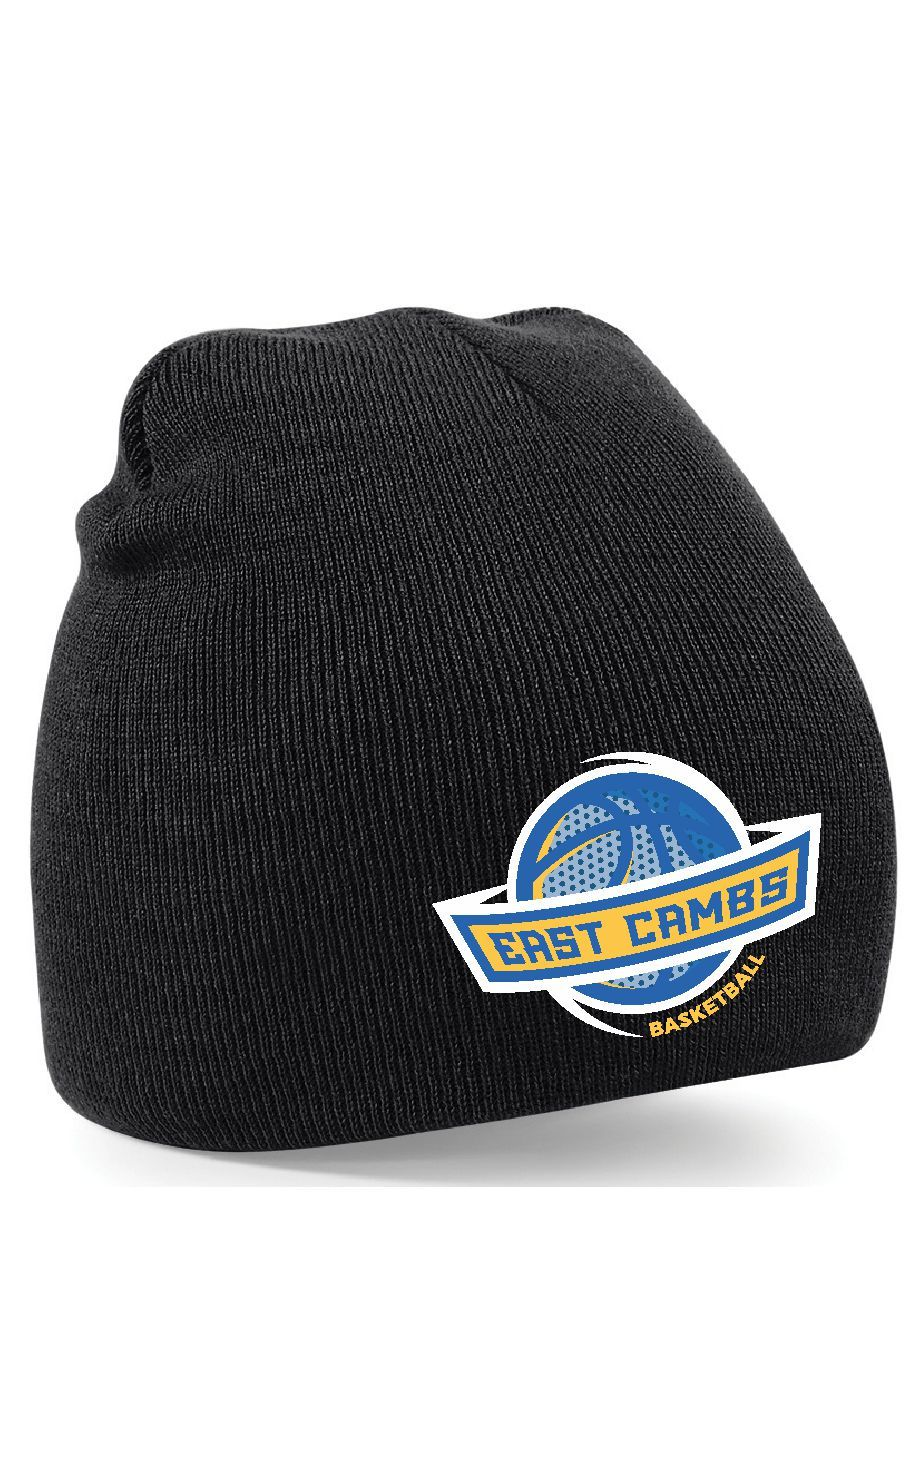 Warriors - Beanie (Black)